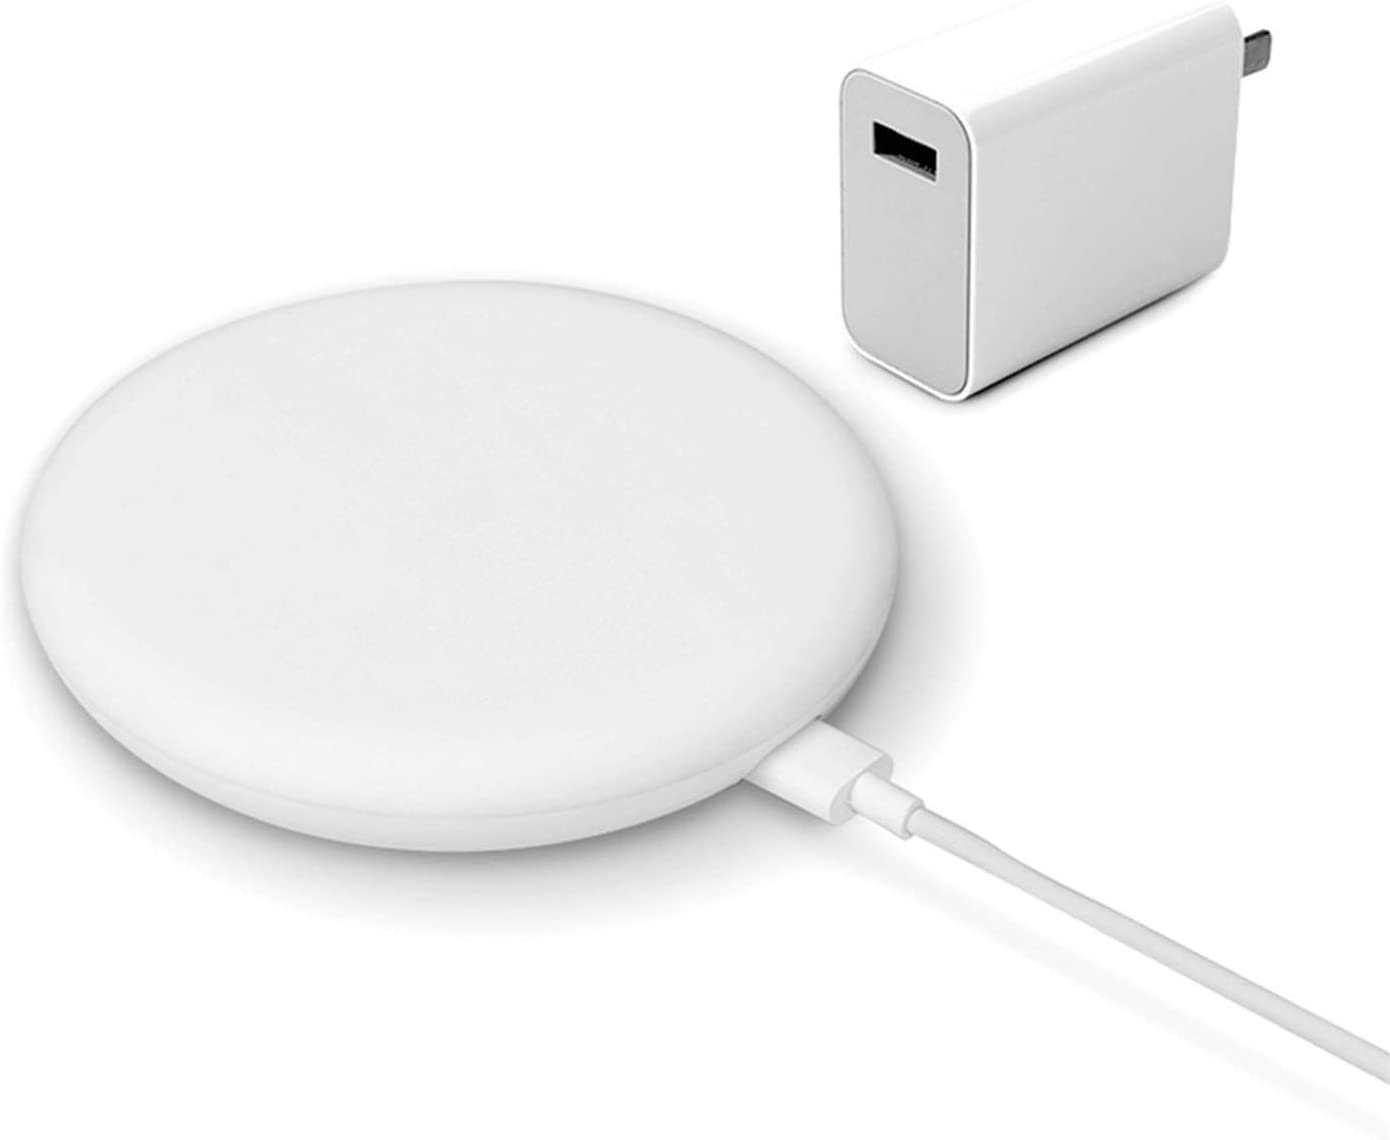 Xiaomi Qi 20W Wireless Fast Charger for Xiaomi Mi9 Mix 2S Mix3 27W Plug Wireless Charging Pad for iPhone Android,Wireless Charger Kit